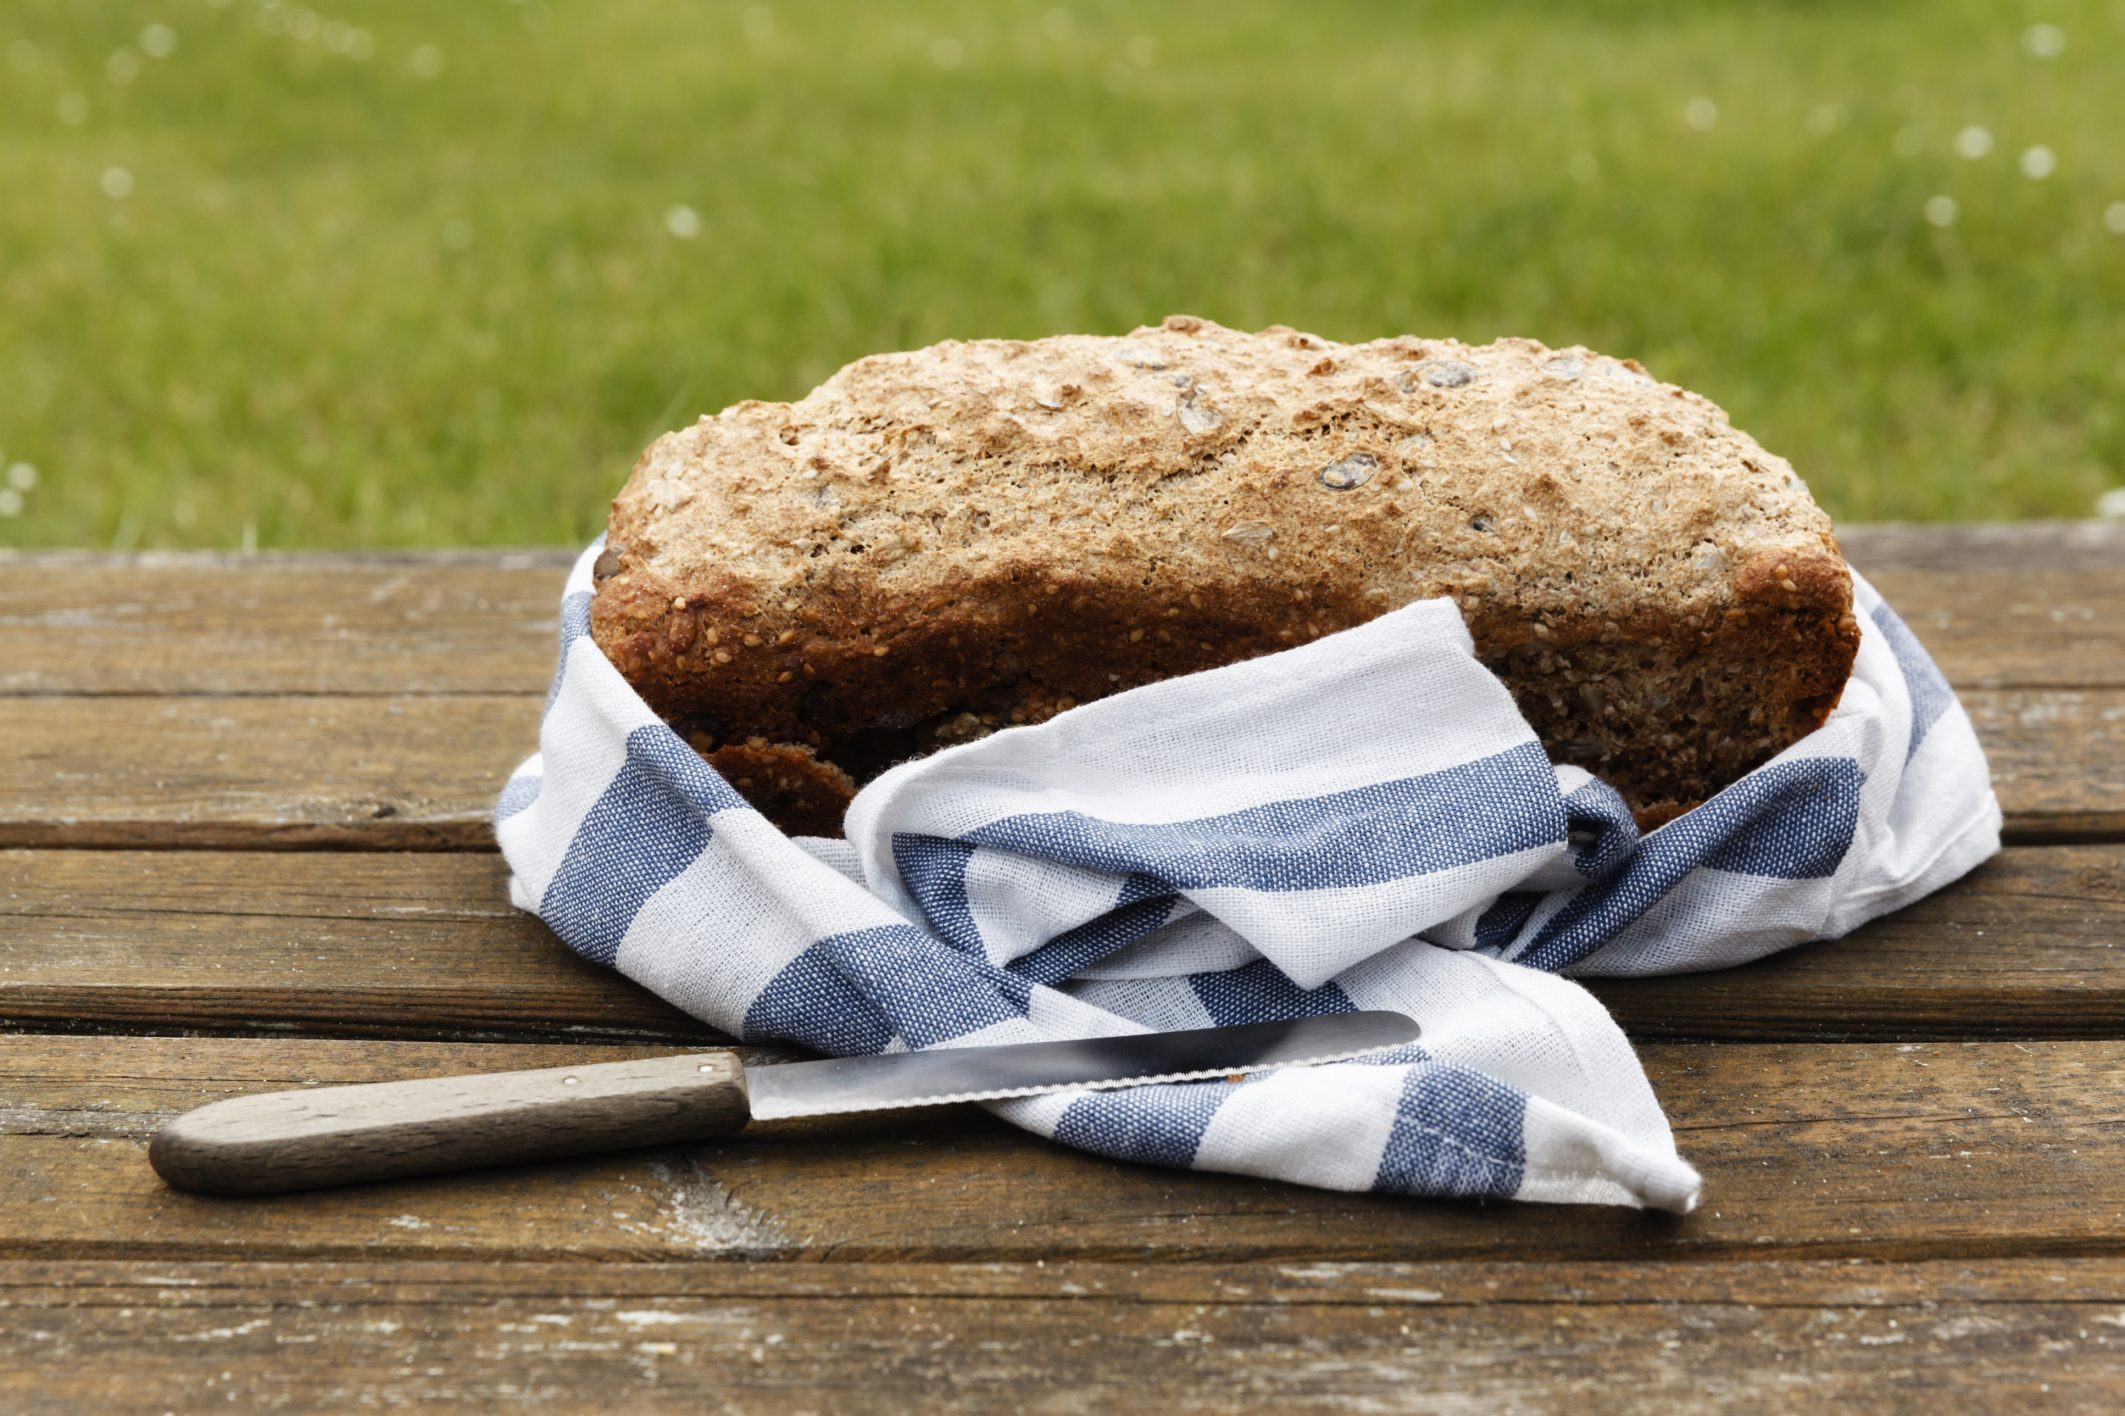 recipe: brown bread advantages and disadvantages [28]